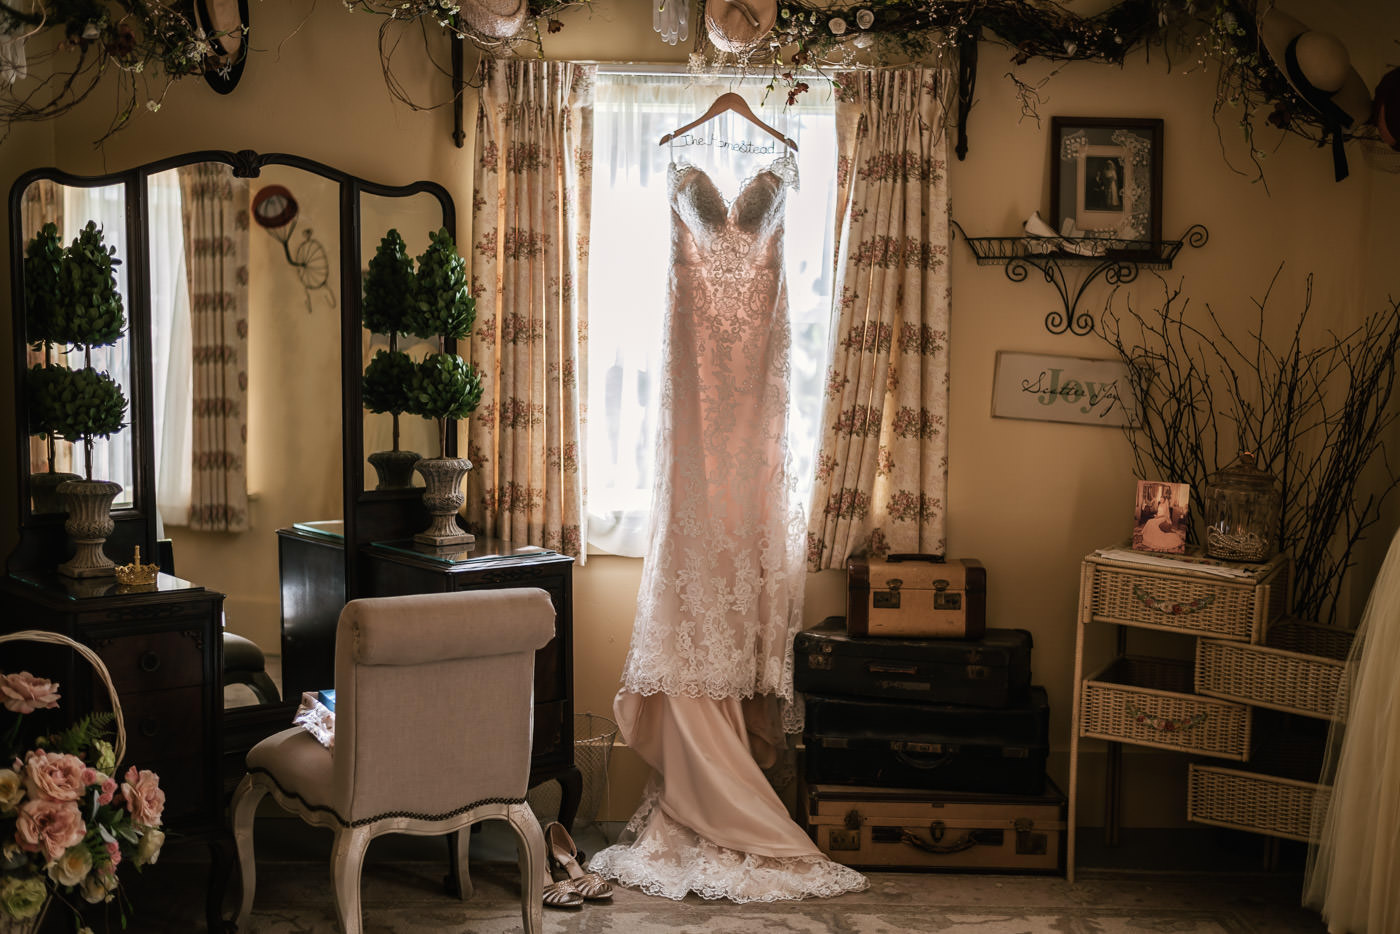 Gorgeous wedding dress hangs in the window of the bridal suite at The Homestead.